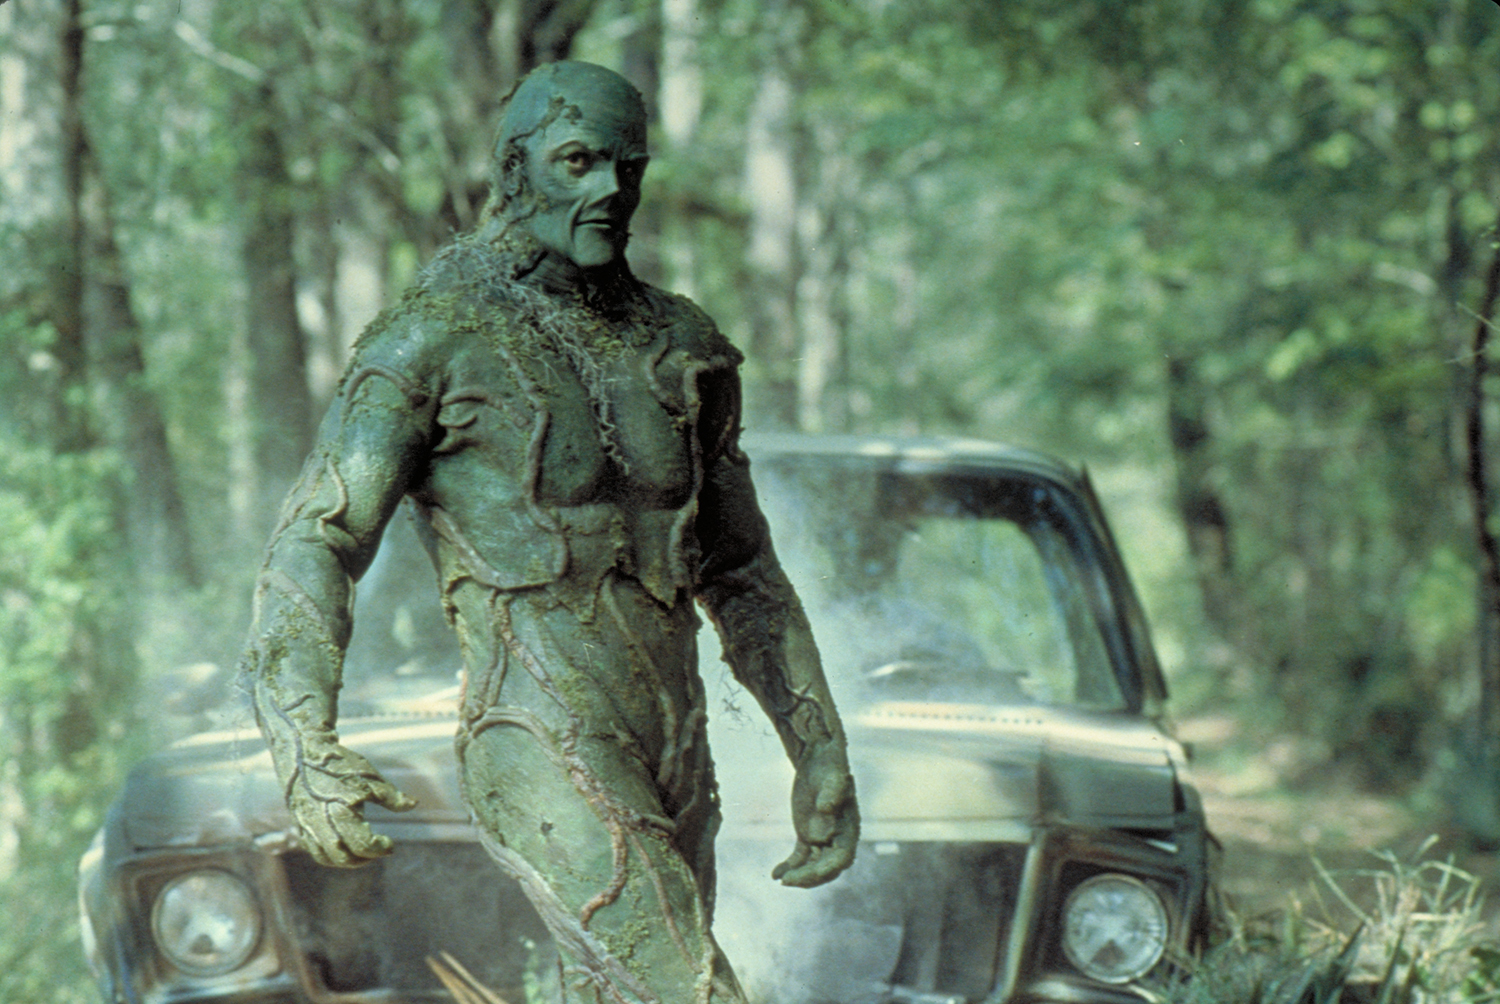 [News] 88 Films Presents SWAMP THING on UK Dual Format Blu-ray & DVD